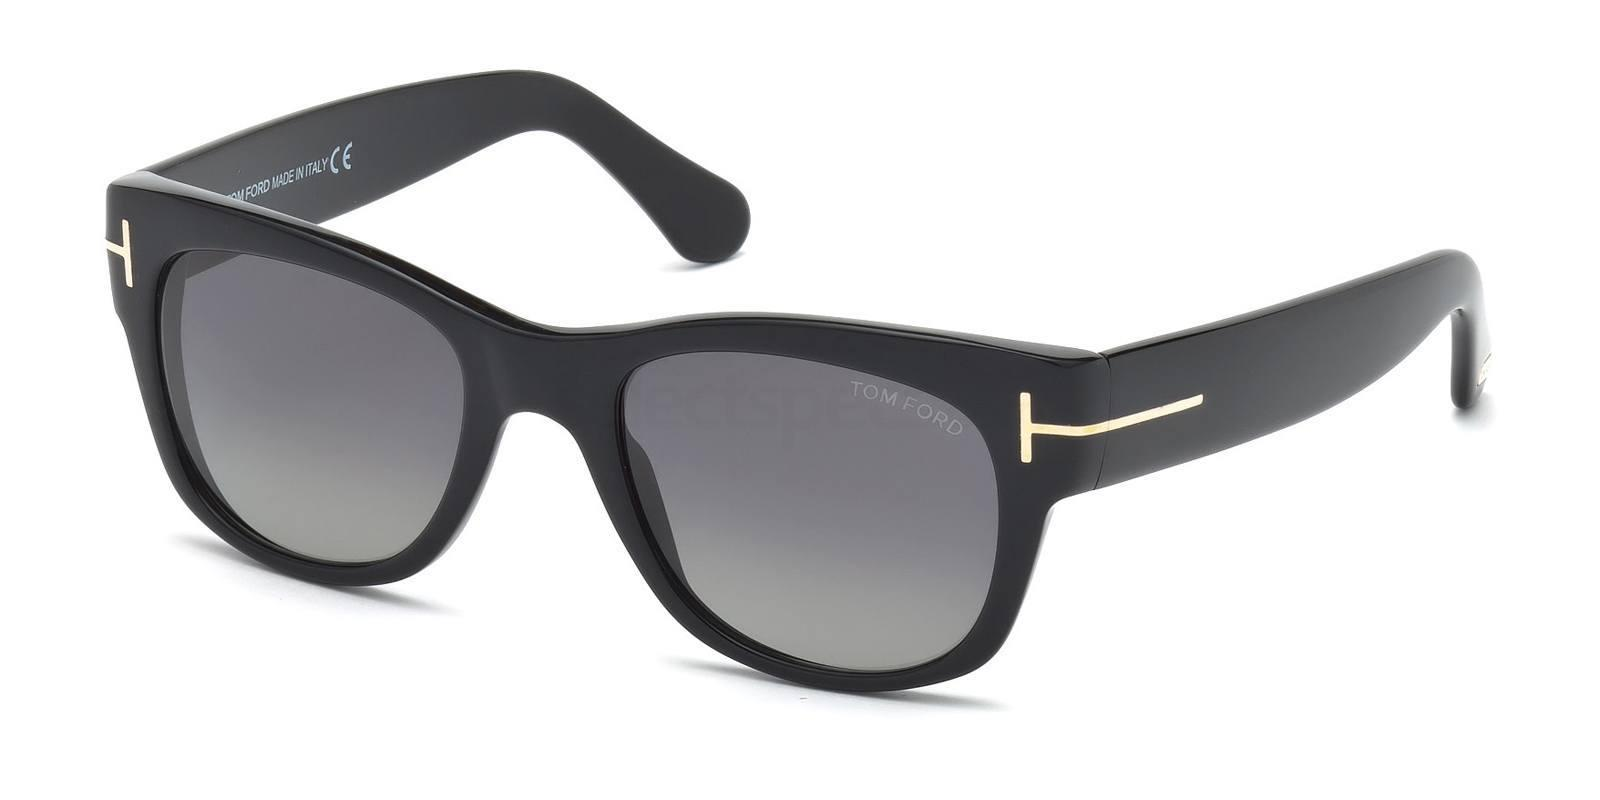 01D FT0058 Cary , Tom Ford